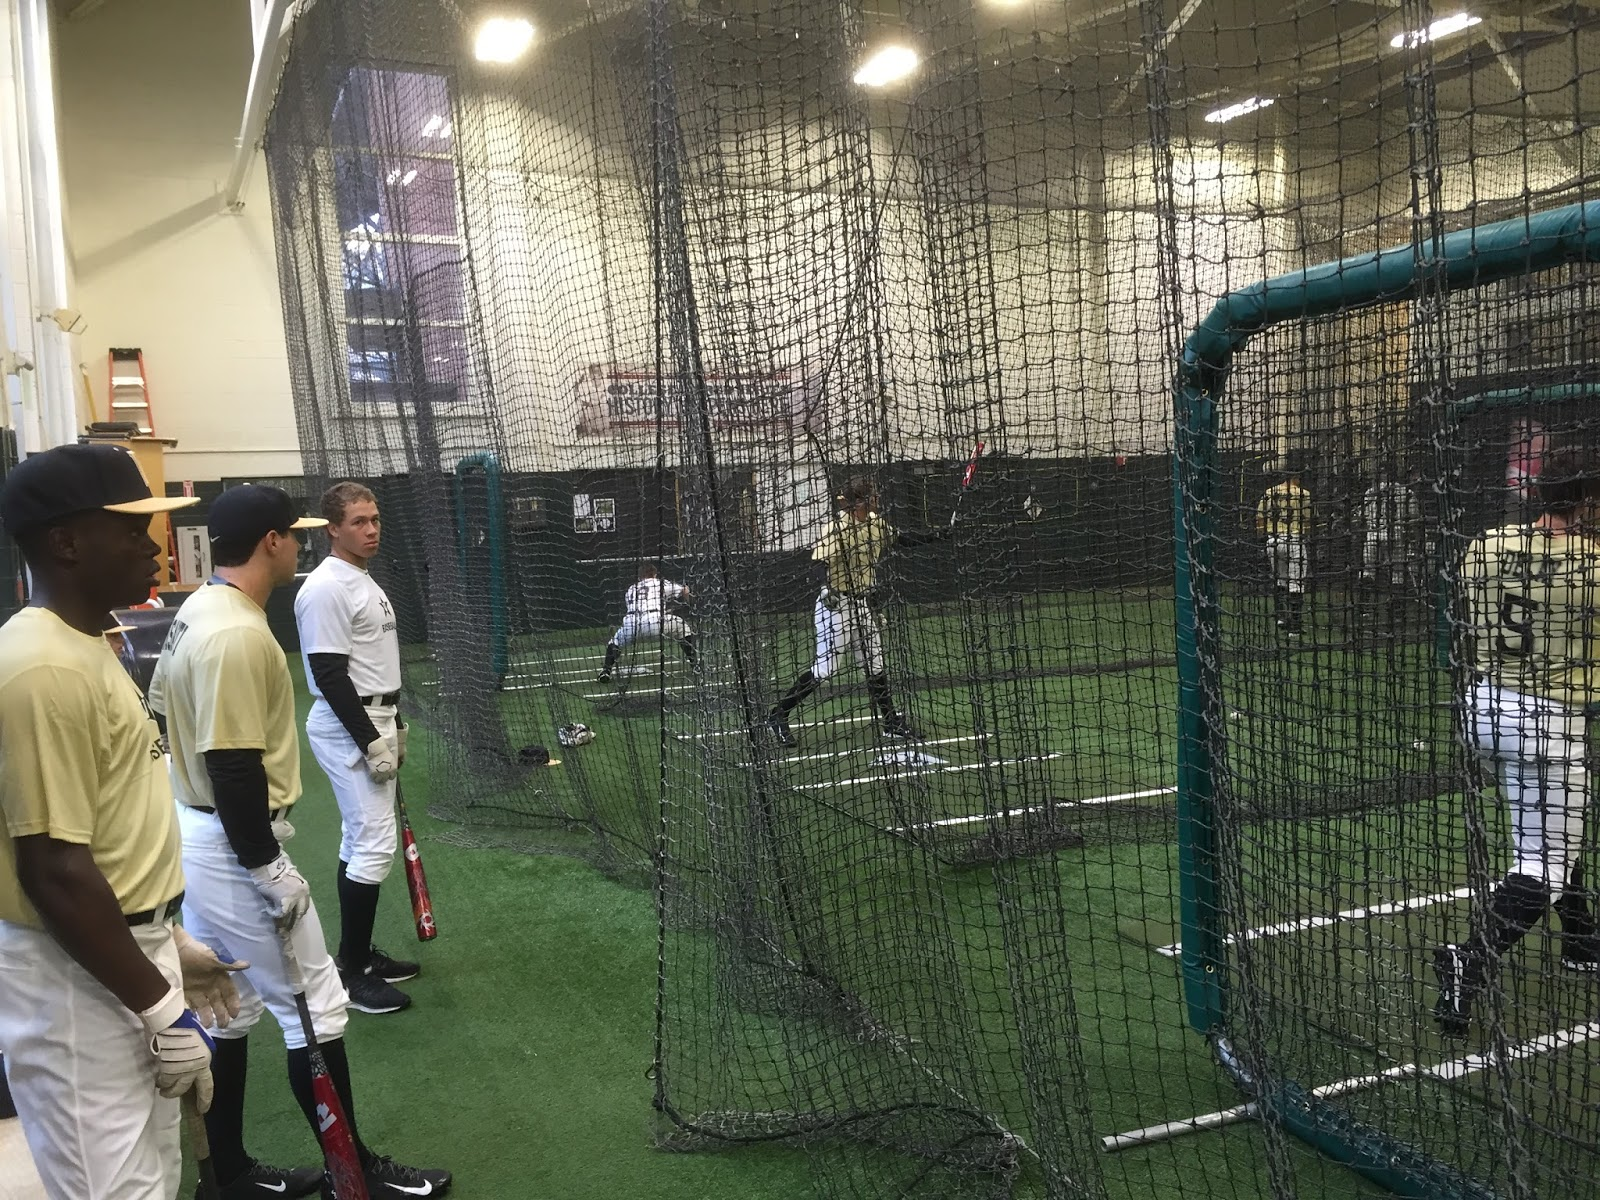 The Batting Cages. Indoor Pre Intersquad Game, On A Rainy Day.